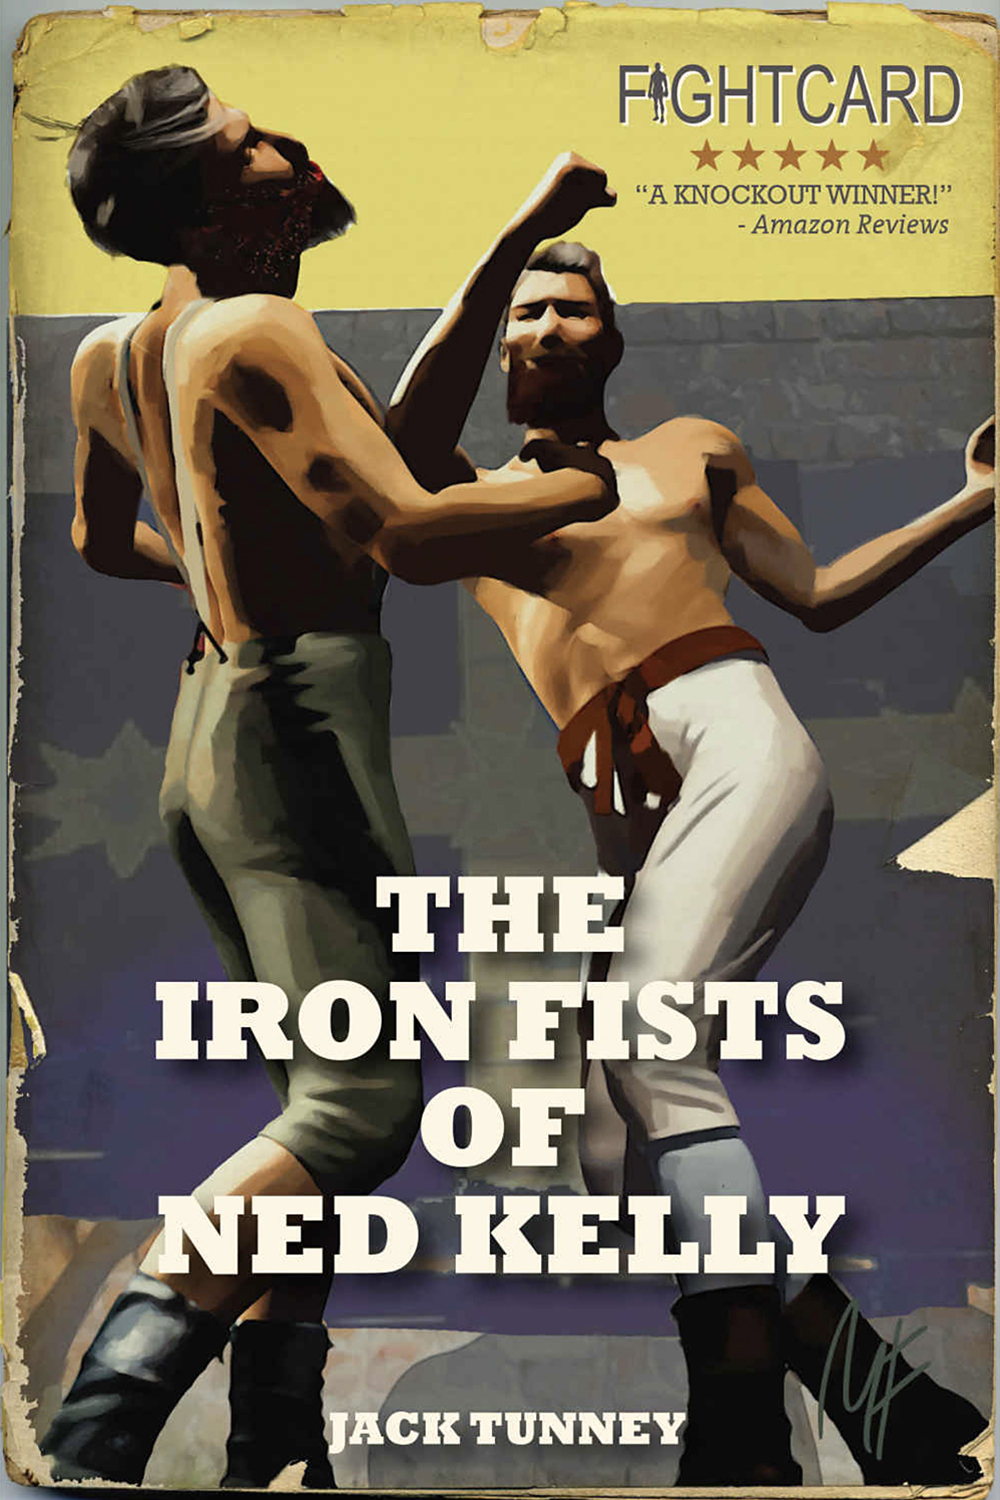 The Iron Fists of Ned Kelly by Jack Tunney